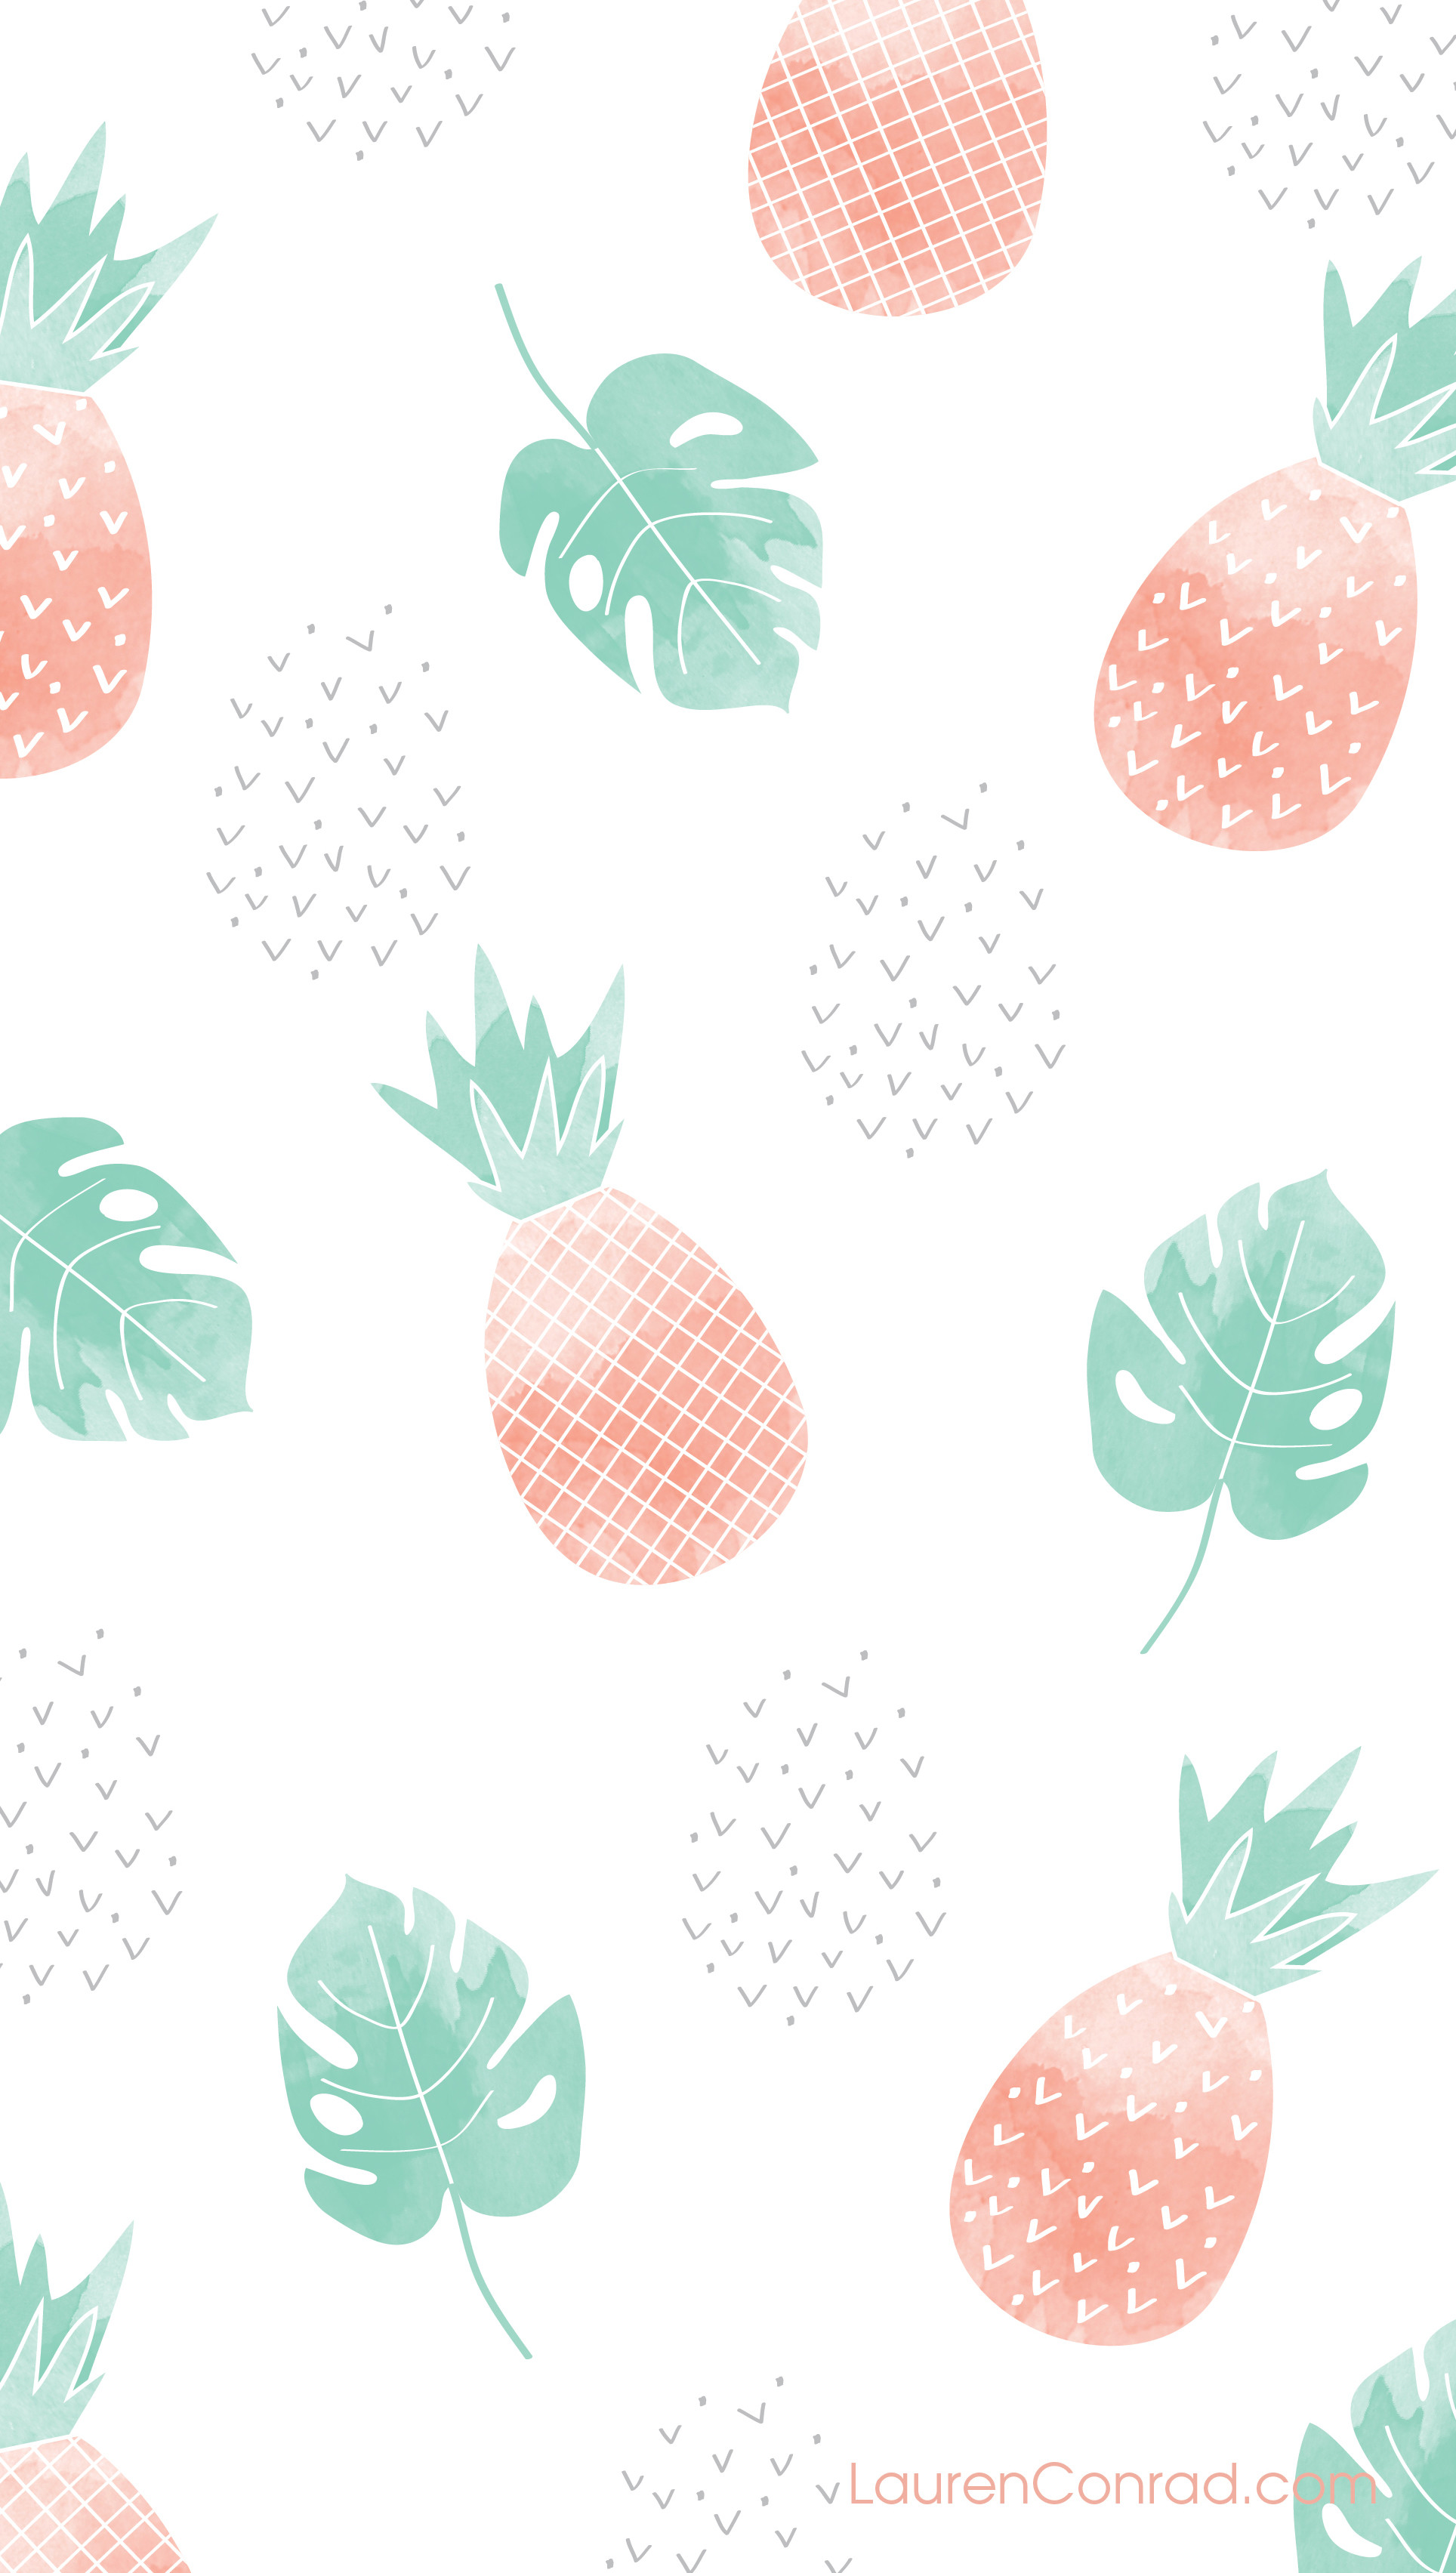 Another Pineapple Iphone Wallpaper , Diy Wallpaper For Phone